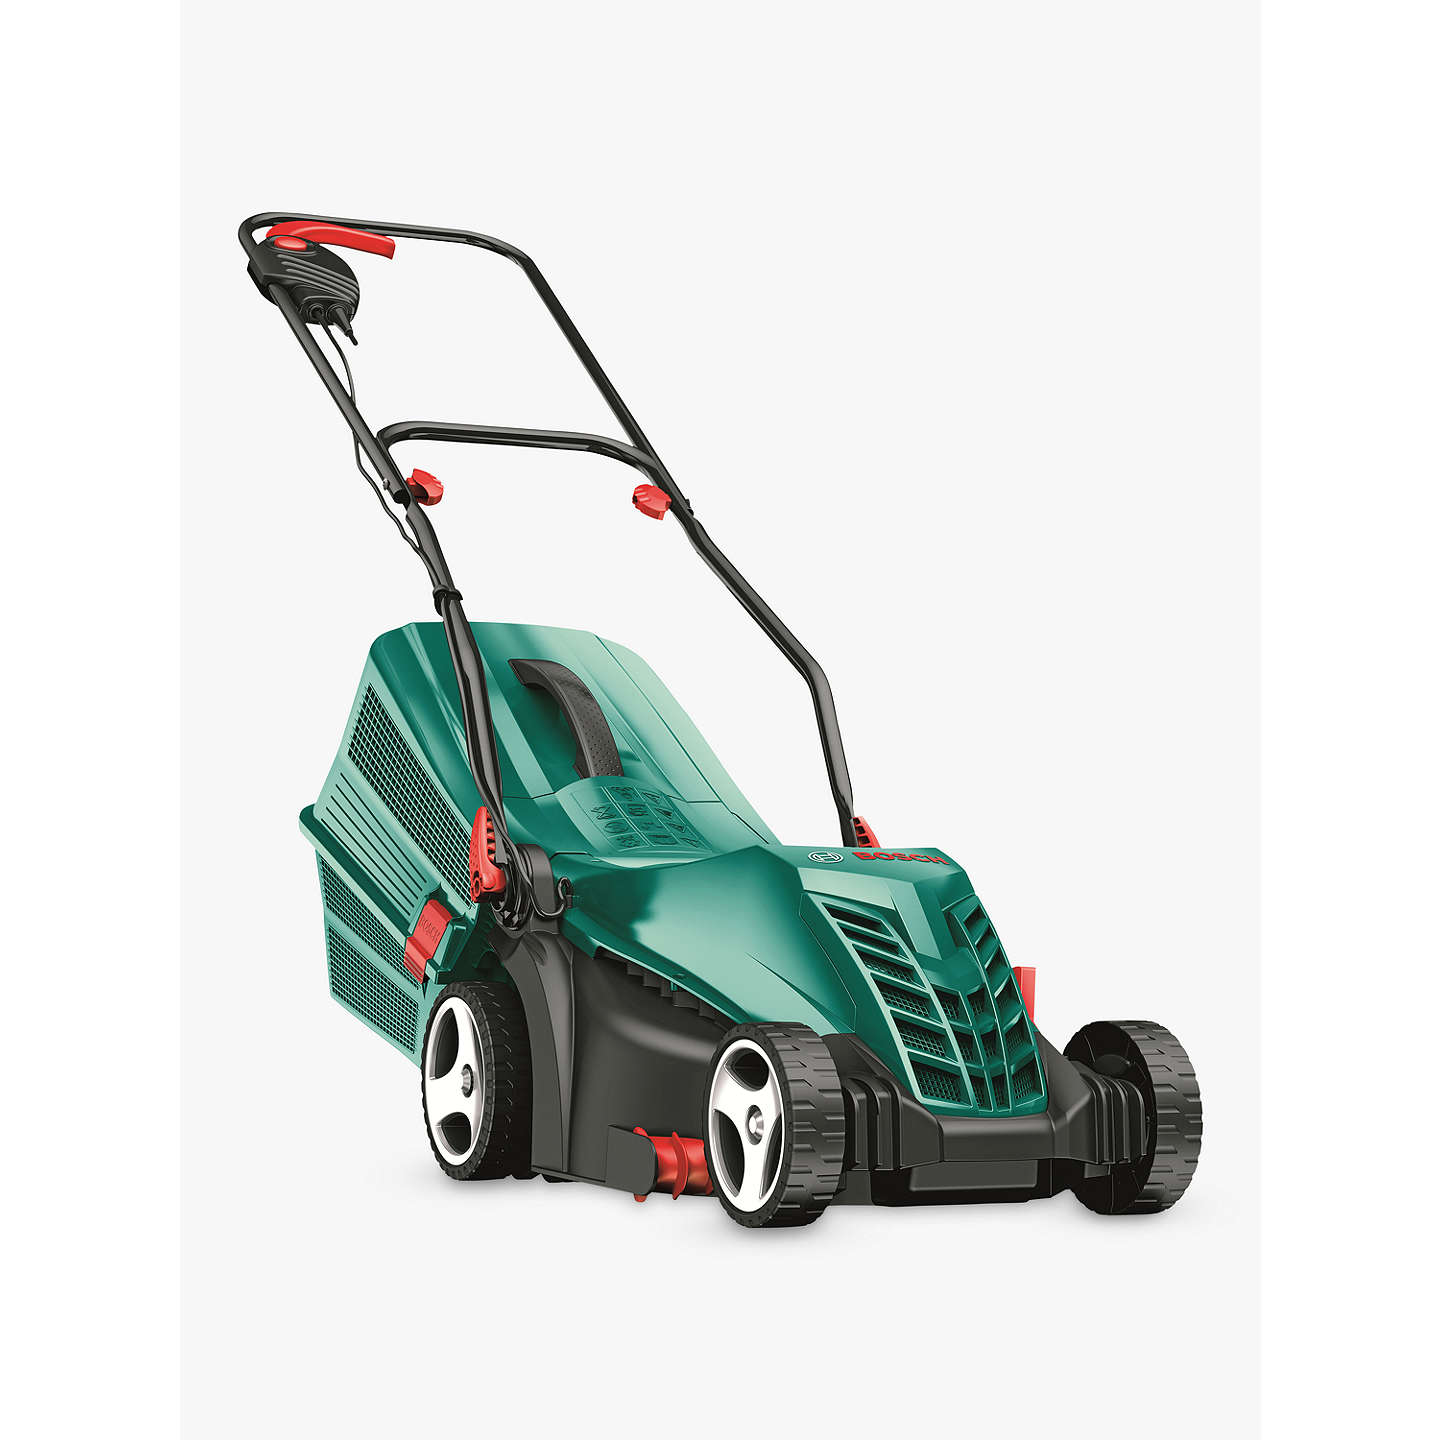 bosch rotak 34 r rotary hand propelled electric lawnmower at john lewis. Black Bedroom Furniture Sets. Home Design Ideas